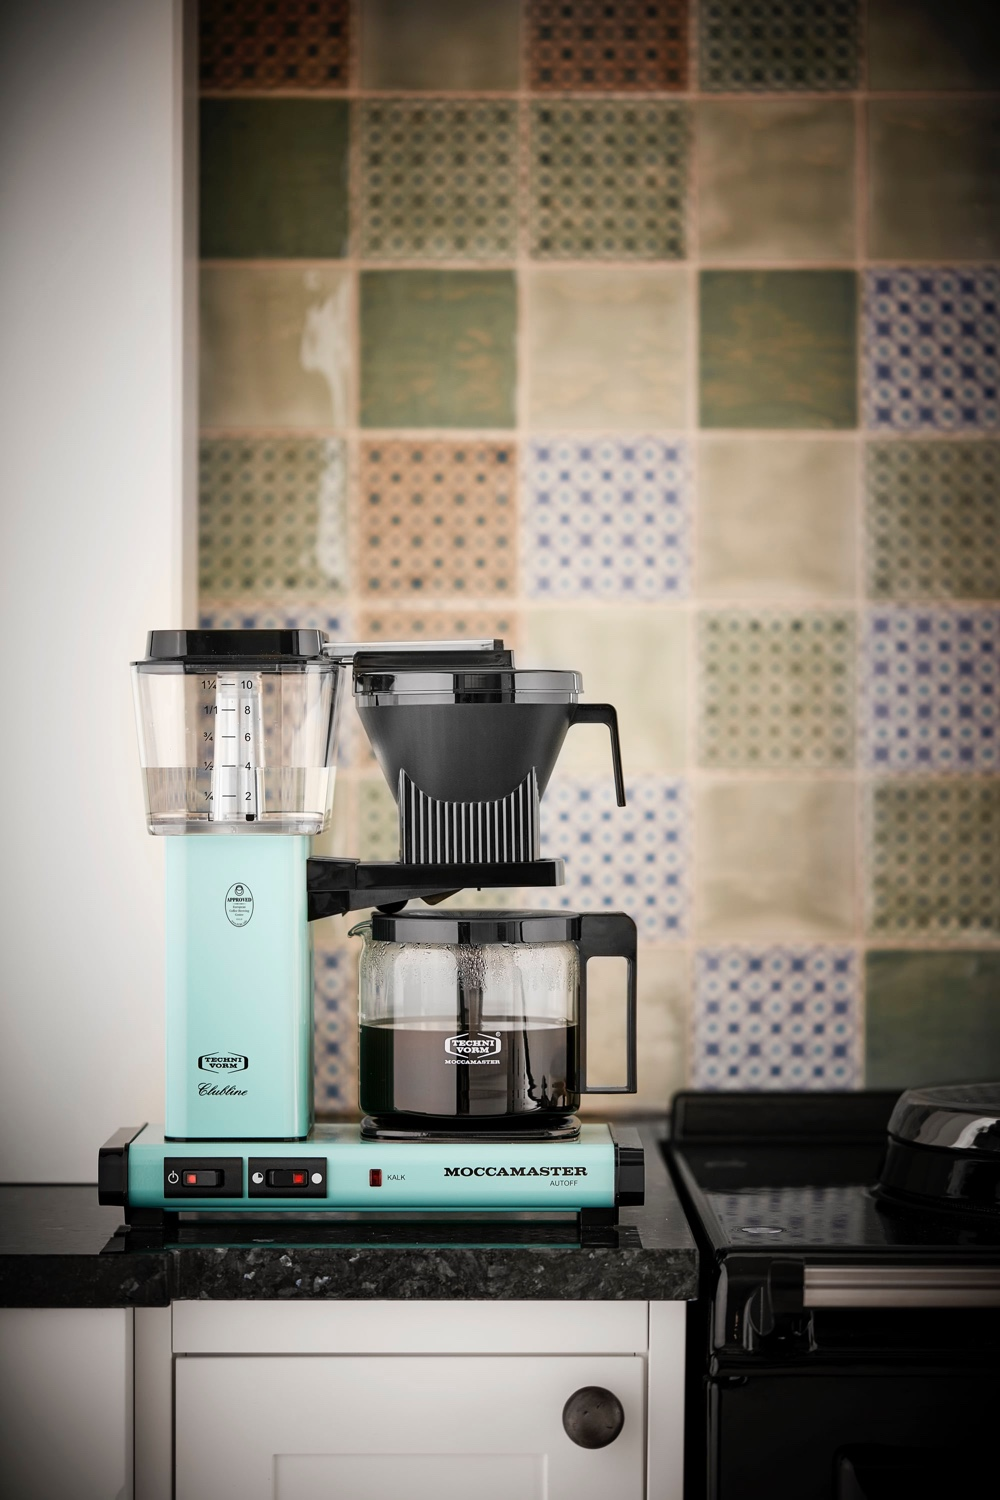 The Moccamaster KBG 741 AO in turquoise. Image © SØBY´S.